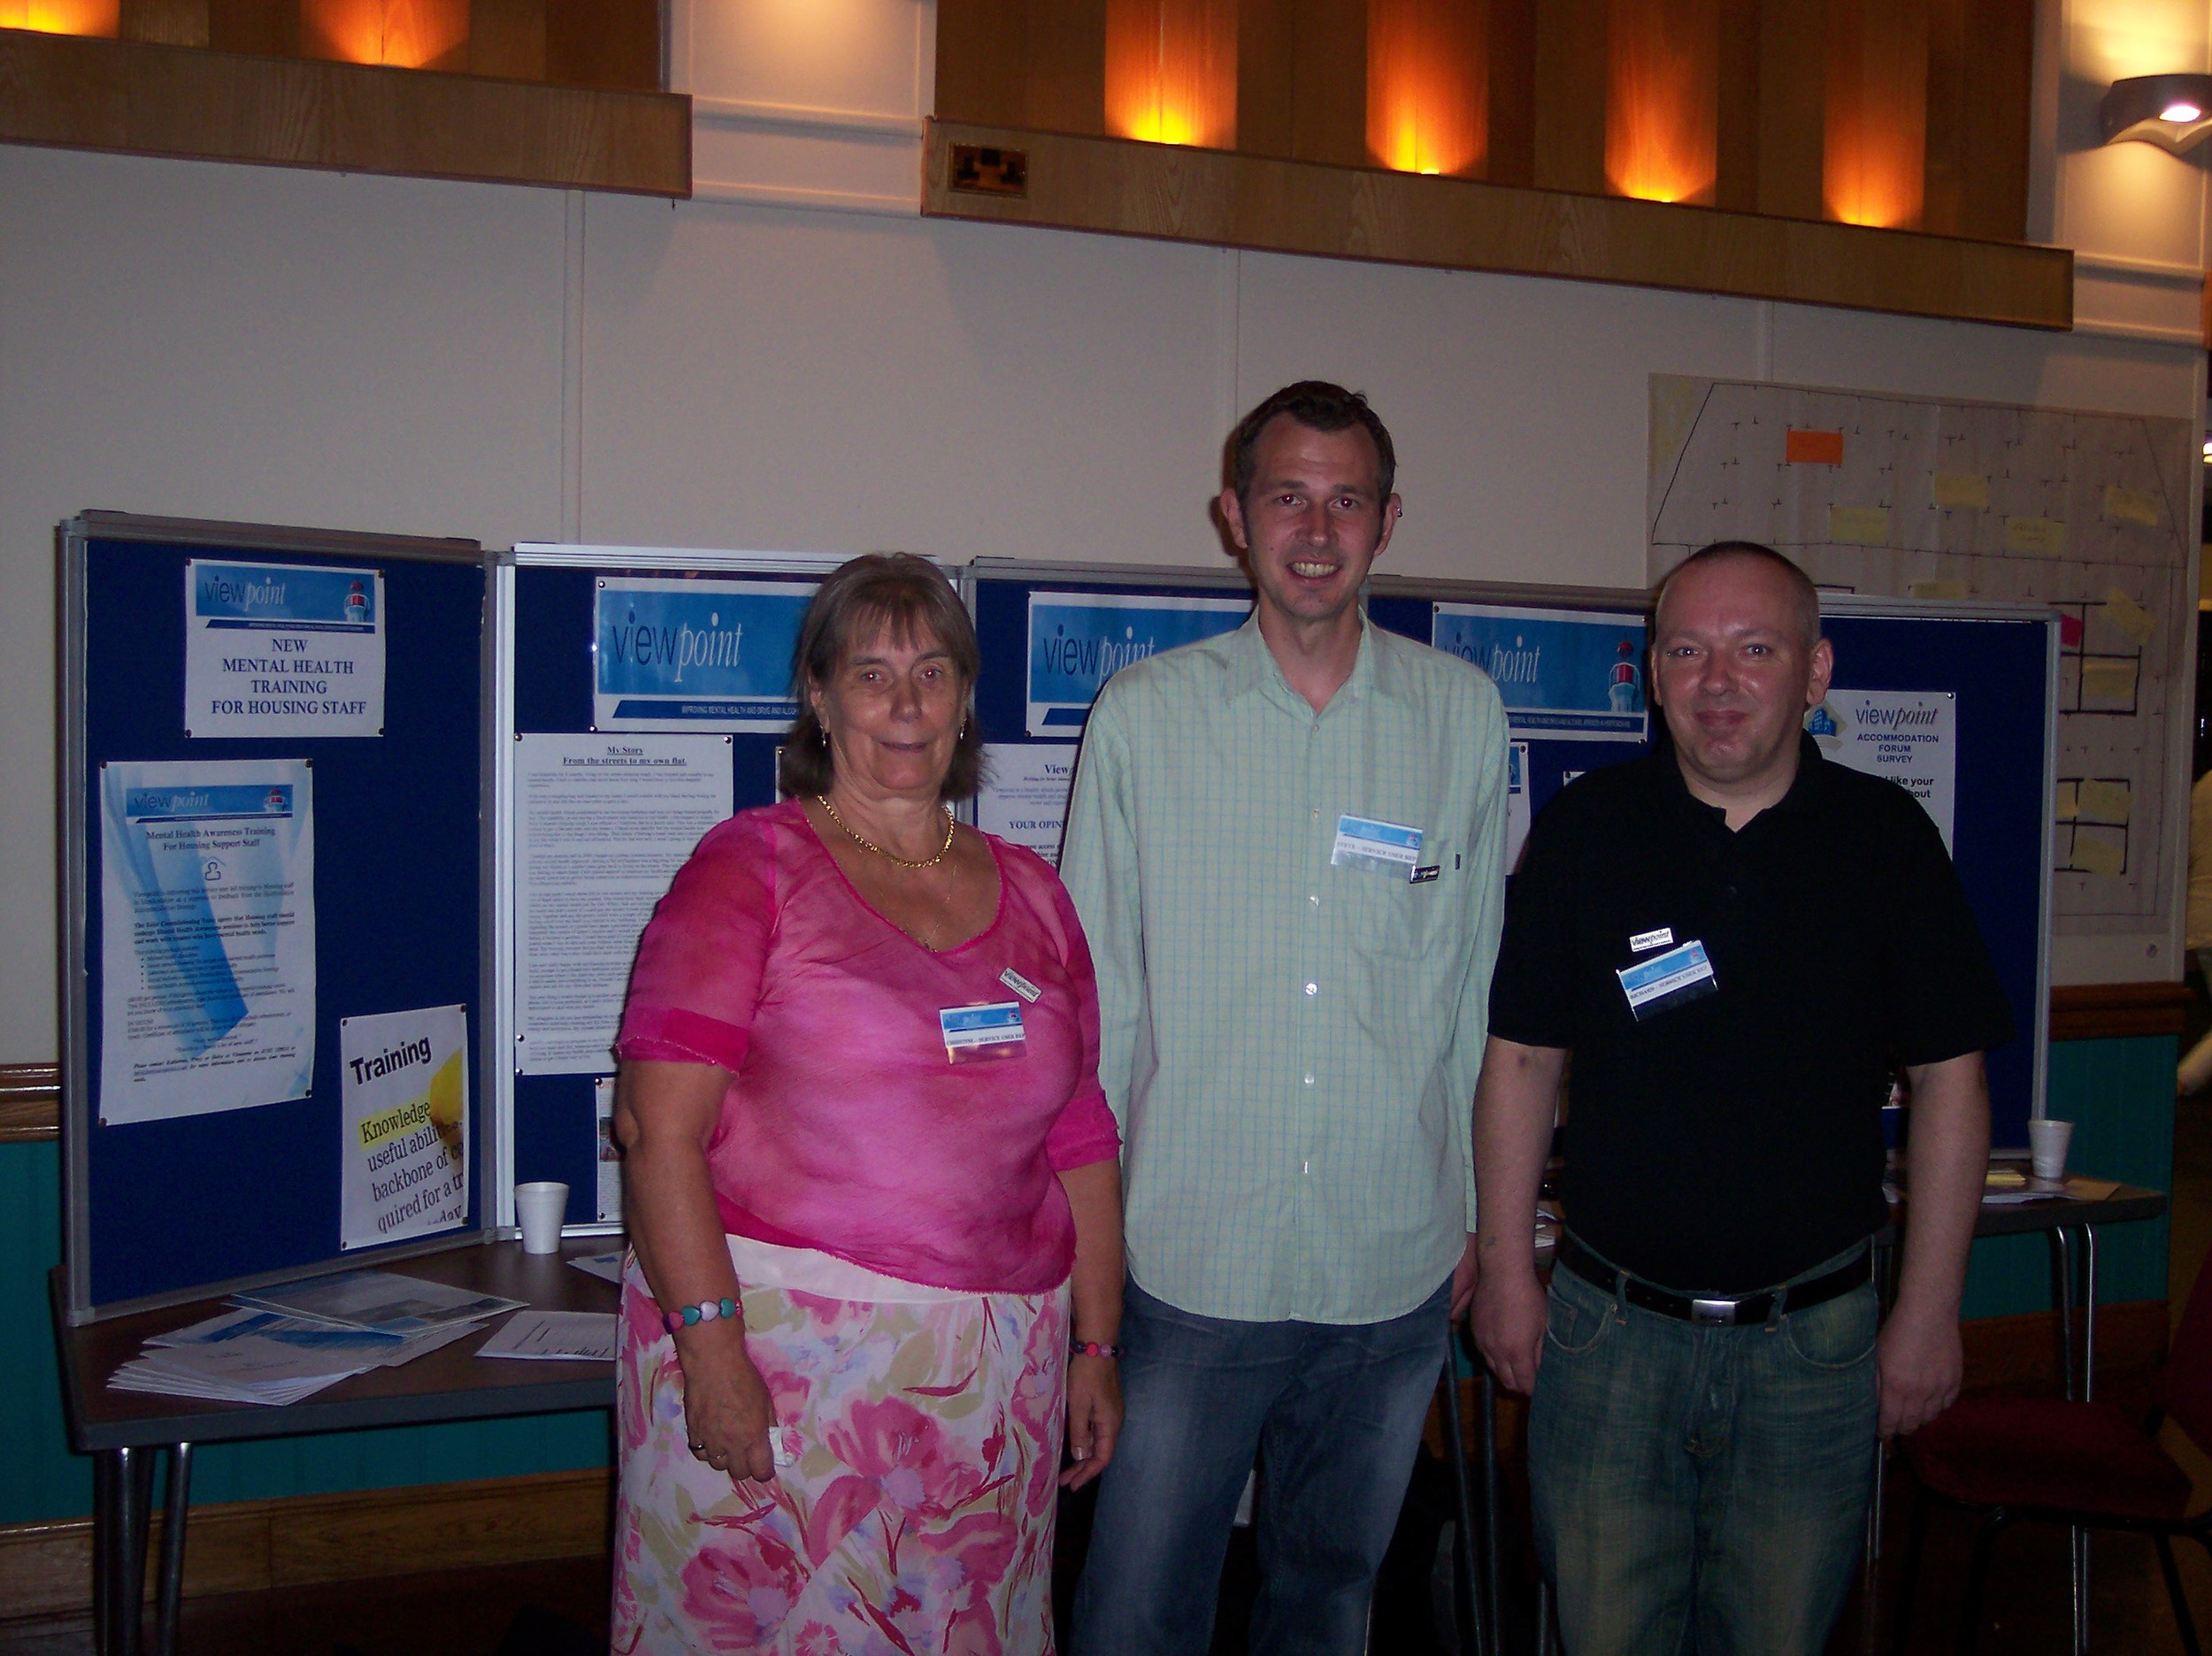 christine, richard and steve reps at viewpoint stand.JPG